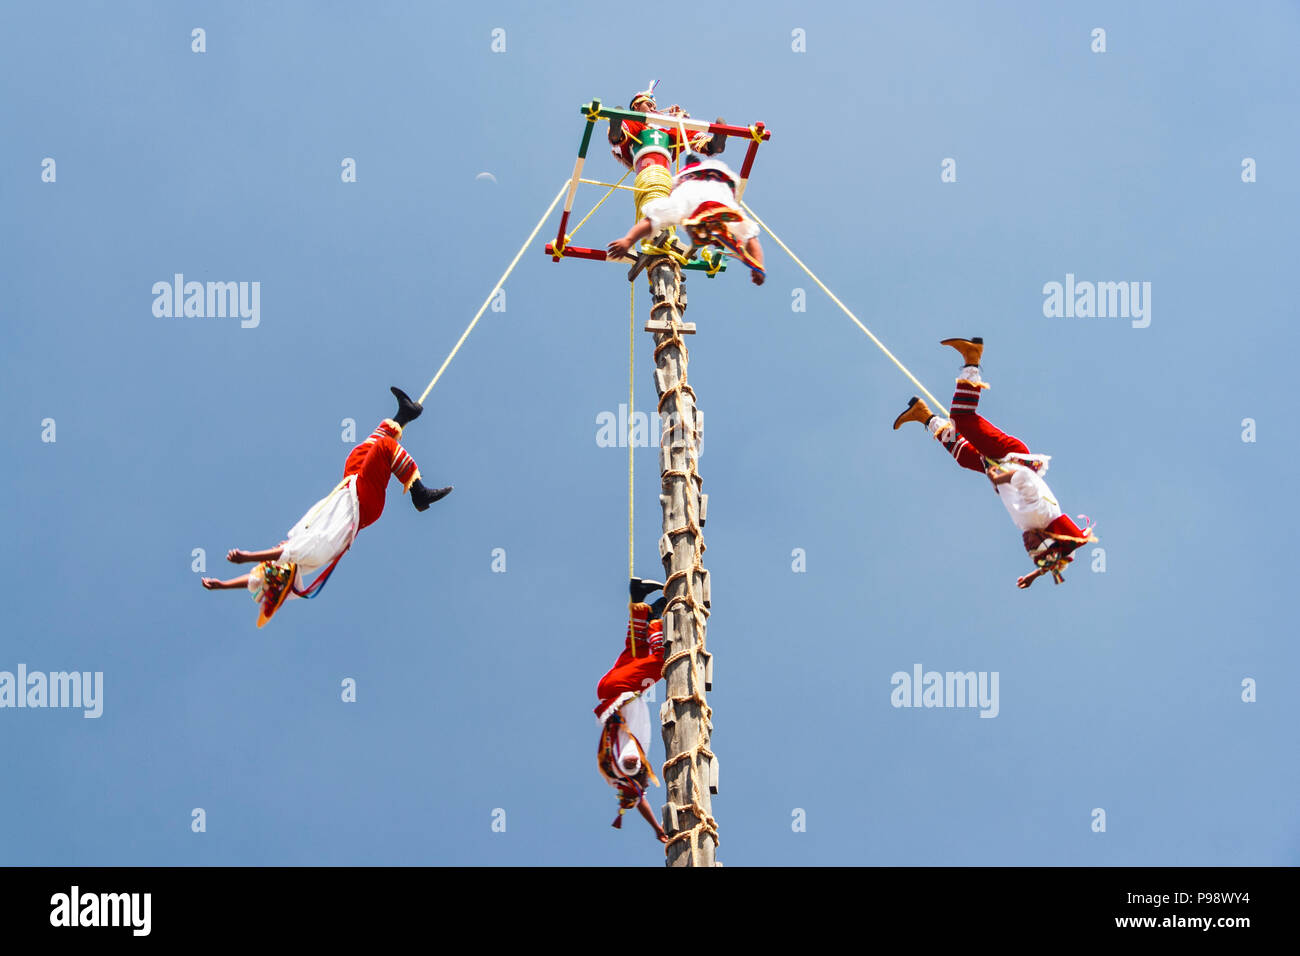 Teotihuacan, Mexico : Totonac people dressed in traditional clothes performing the Voladores or Flying Men ceremony named an Intangible cultural herit - Stock Image